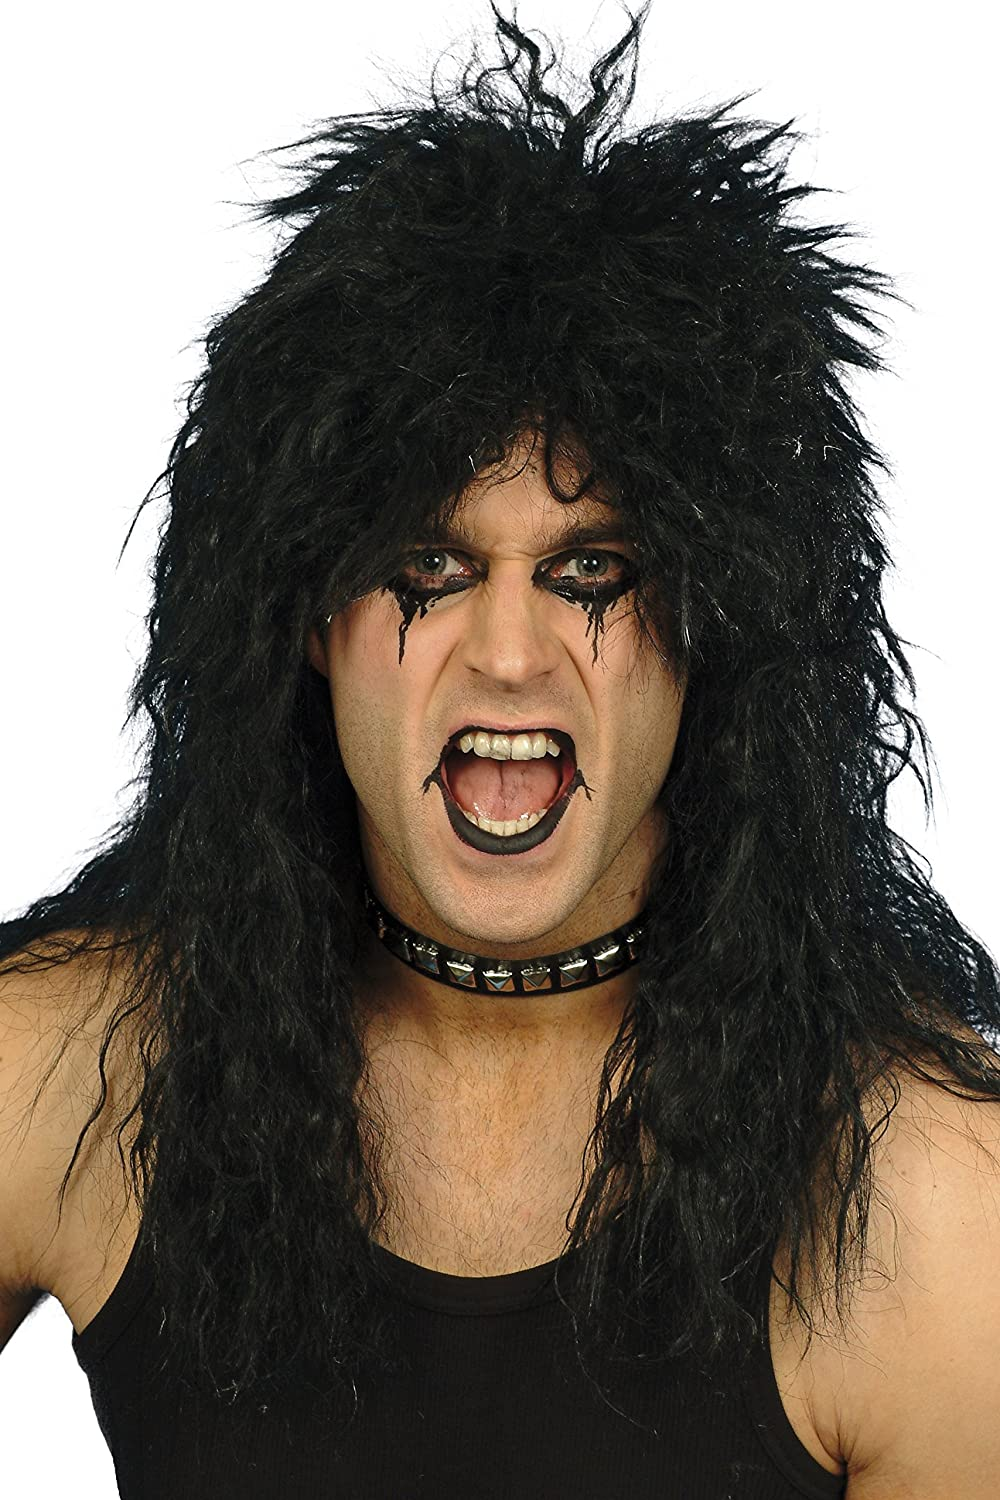 Smiffy's Hard Rocker Wig - Black for Men. Highly rated by customers. Ideal for creating an 80s metal/rock look.